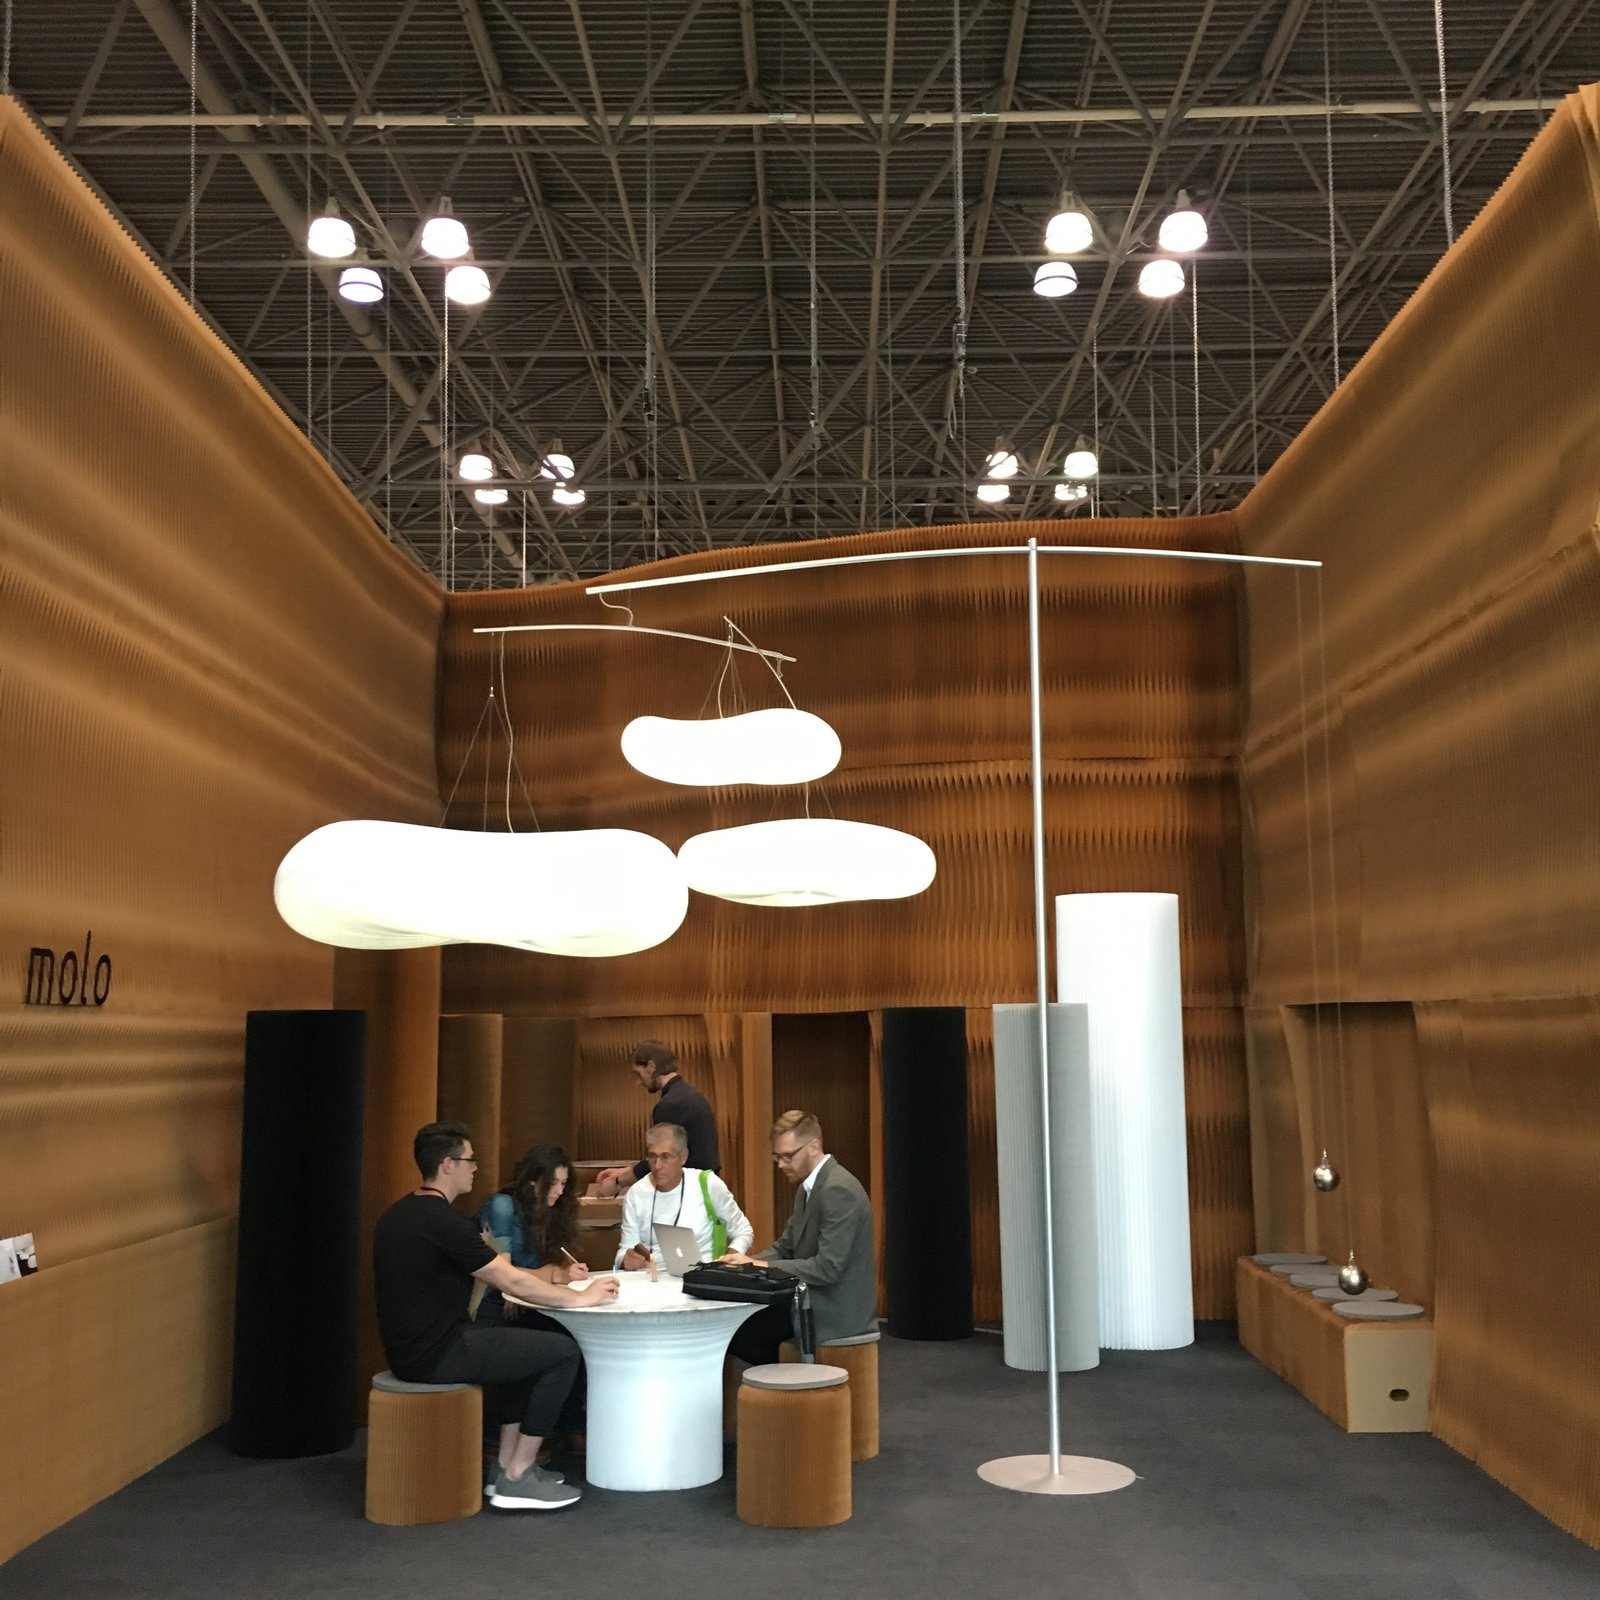 Molo, based in Vancouver, brought their ingenious booth system to ICFF. The walls are constructed of paper, and once the show concludes, it folds up for travel back to the studio. The cloud-like pendants are counter-balanced by hanging weights. The Best of New York Design Week 2017 - Photo 31 of 36